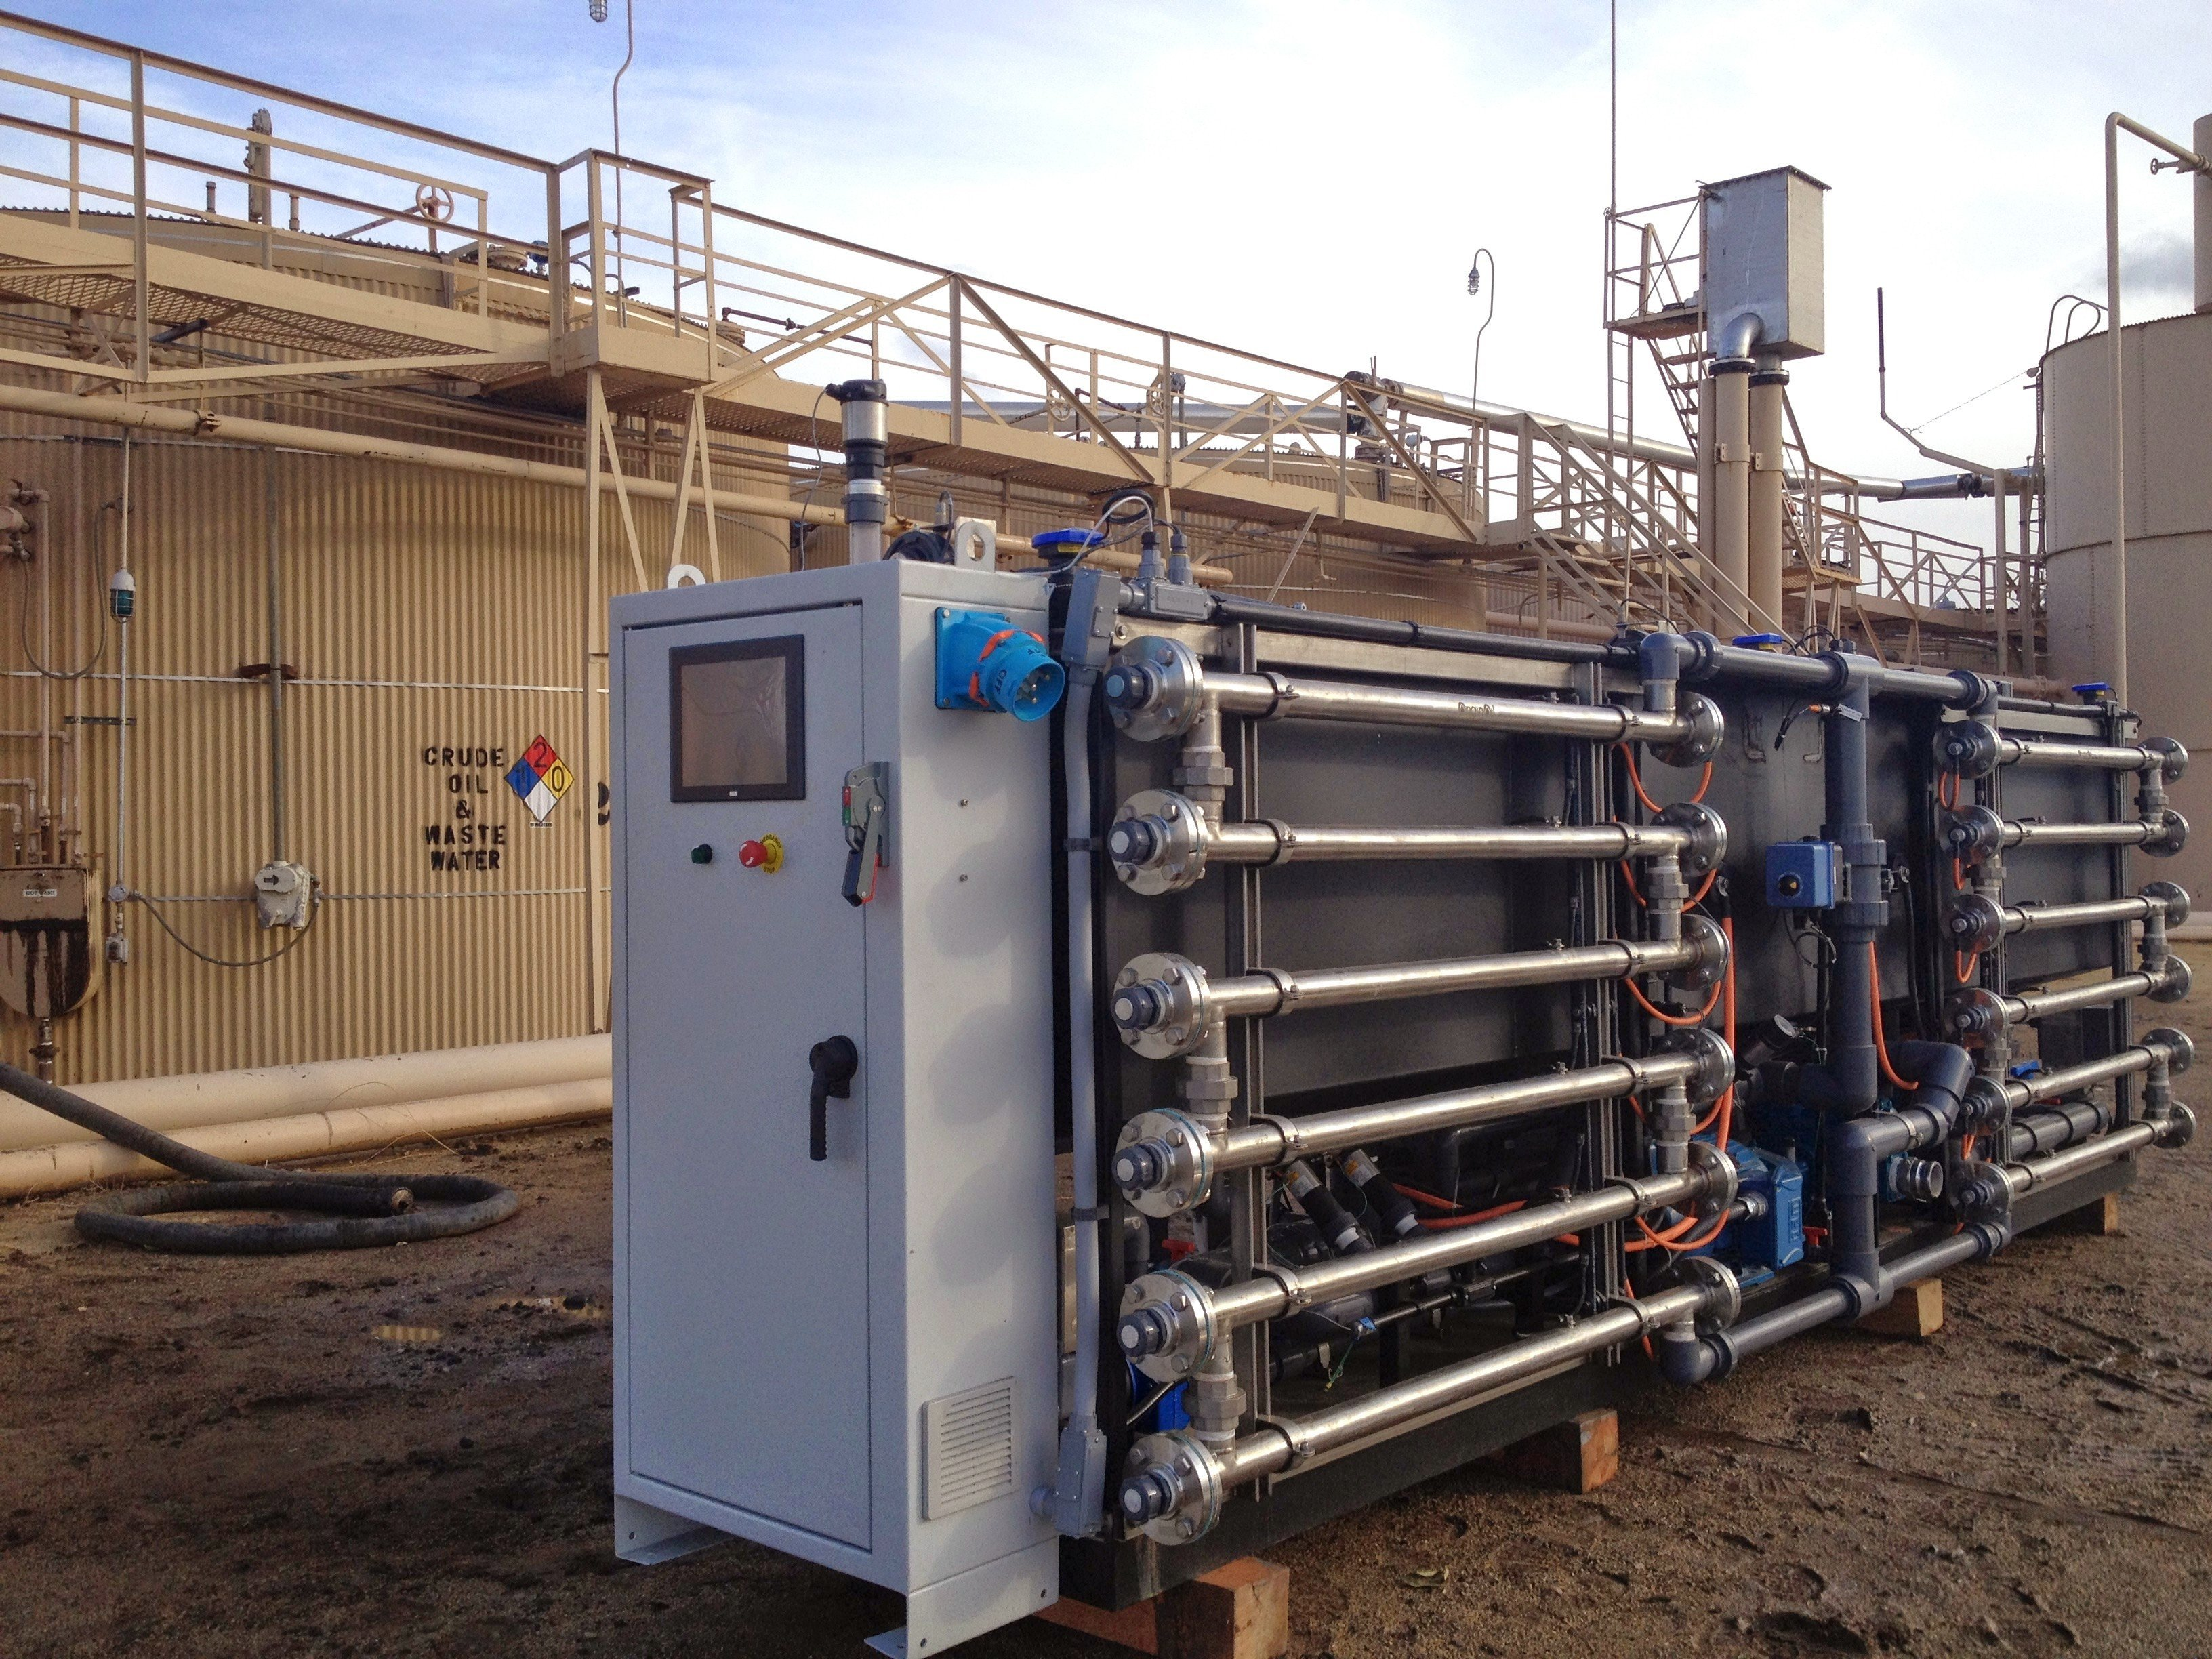 OriginClear's 3000 bpd EWS test unit at a produced water site in the Monterey Formation.